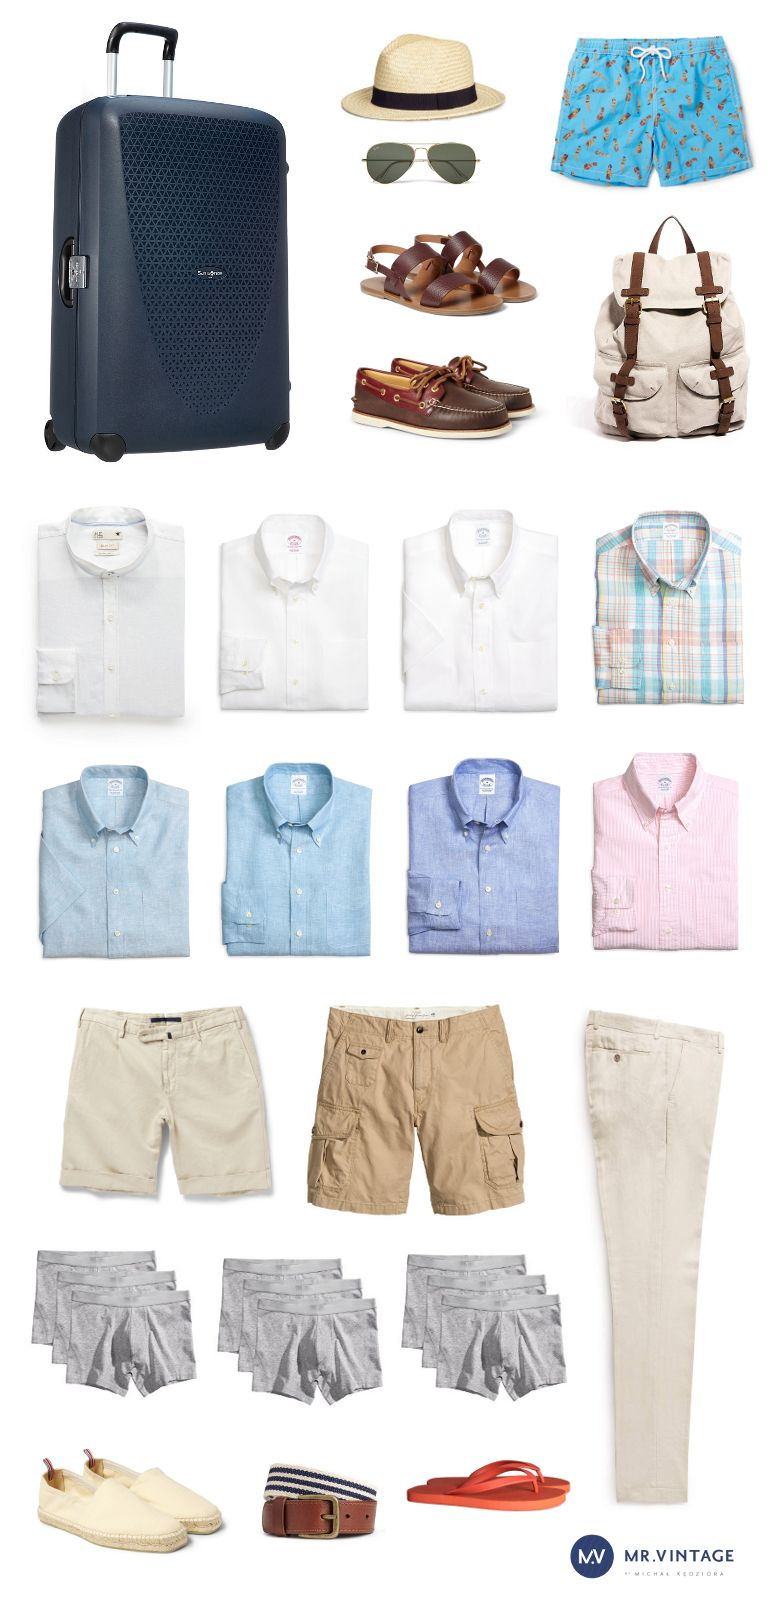 Mrvintage What To Pack For One Week Holiday Dapper Men 2016 Menswear Swag Men